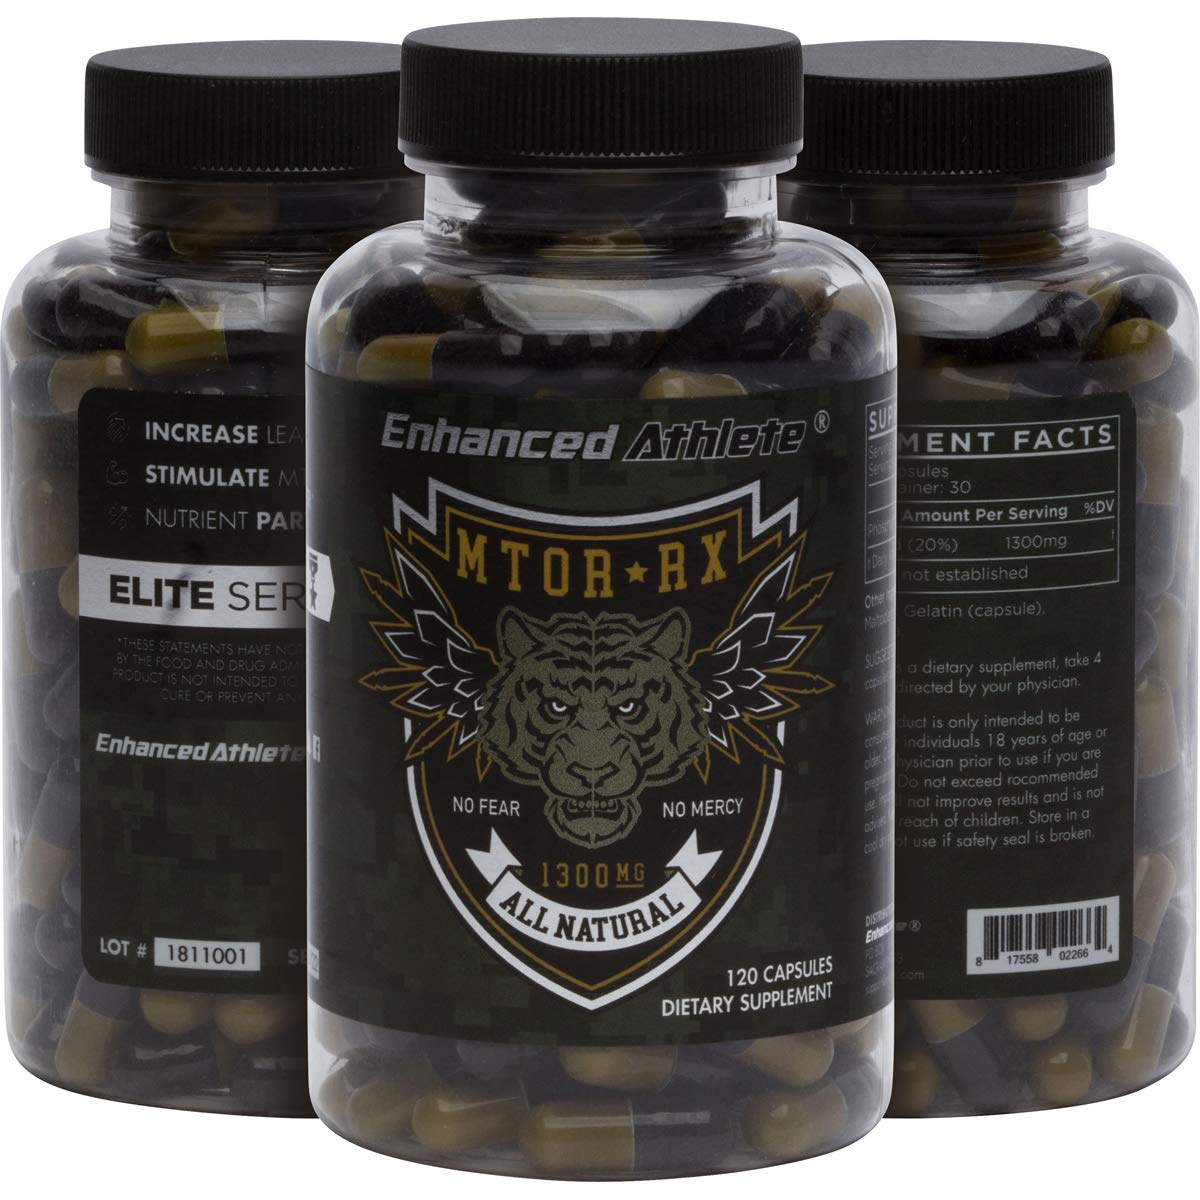 Enhanced Athlete Mtor-Rx - Fully Dosed Phosphatidic Acid, Stimulate M-Tor Activity, Assist Nutrient Partitioning